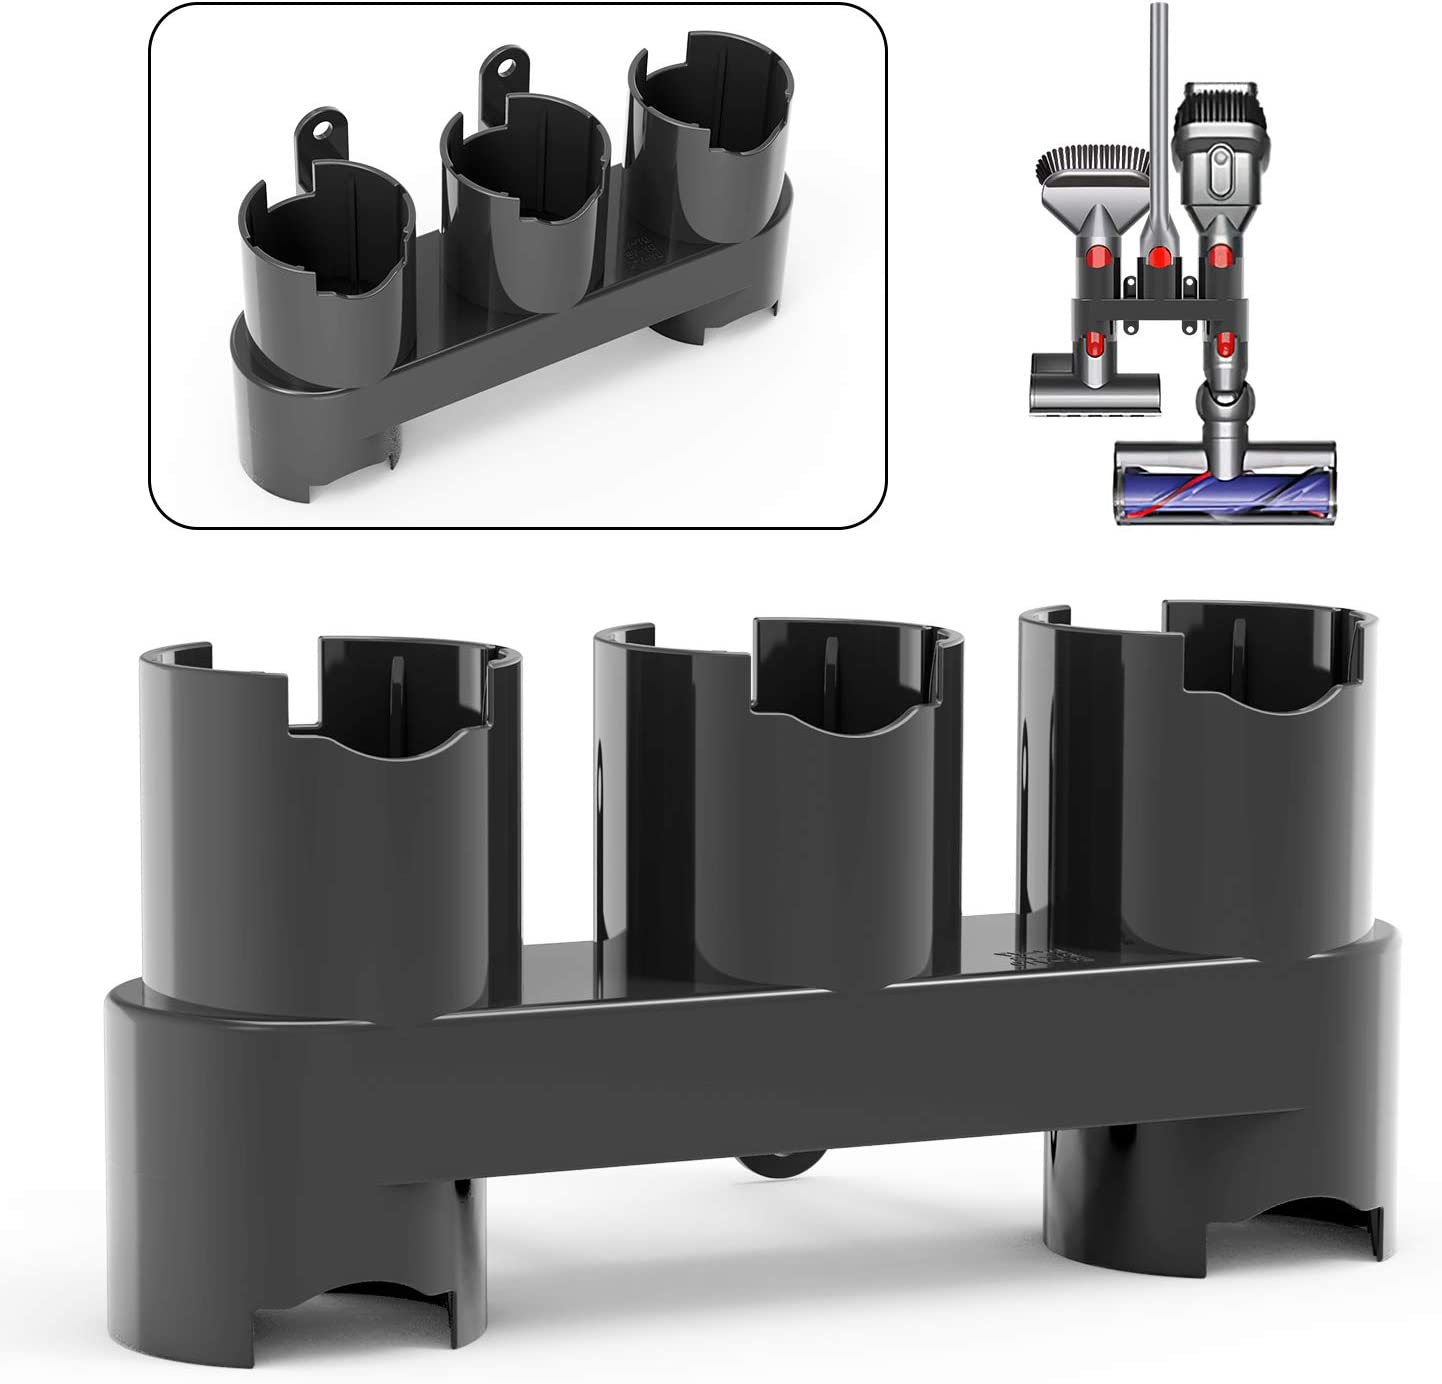 JIRVY Station Accessory Organizer Holders Wall Mount Accessories Compatible with Dyson Cordless Stick Vacuum CleanerV10, V8, V7 Grey(1 Pack)